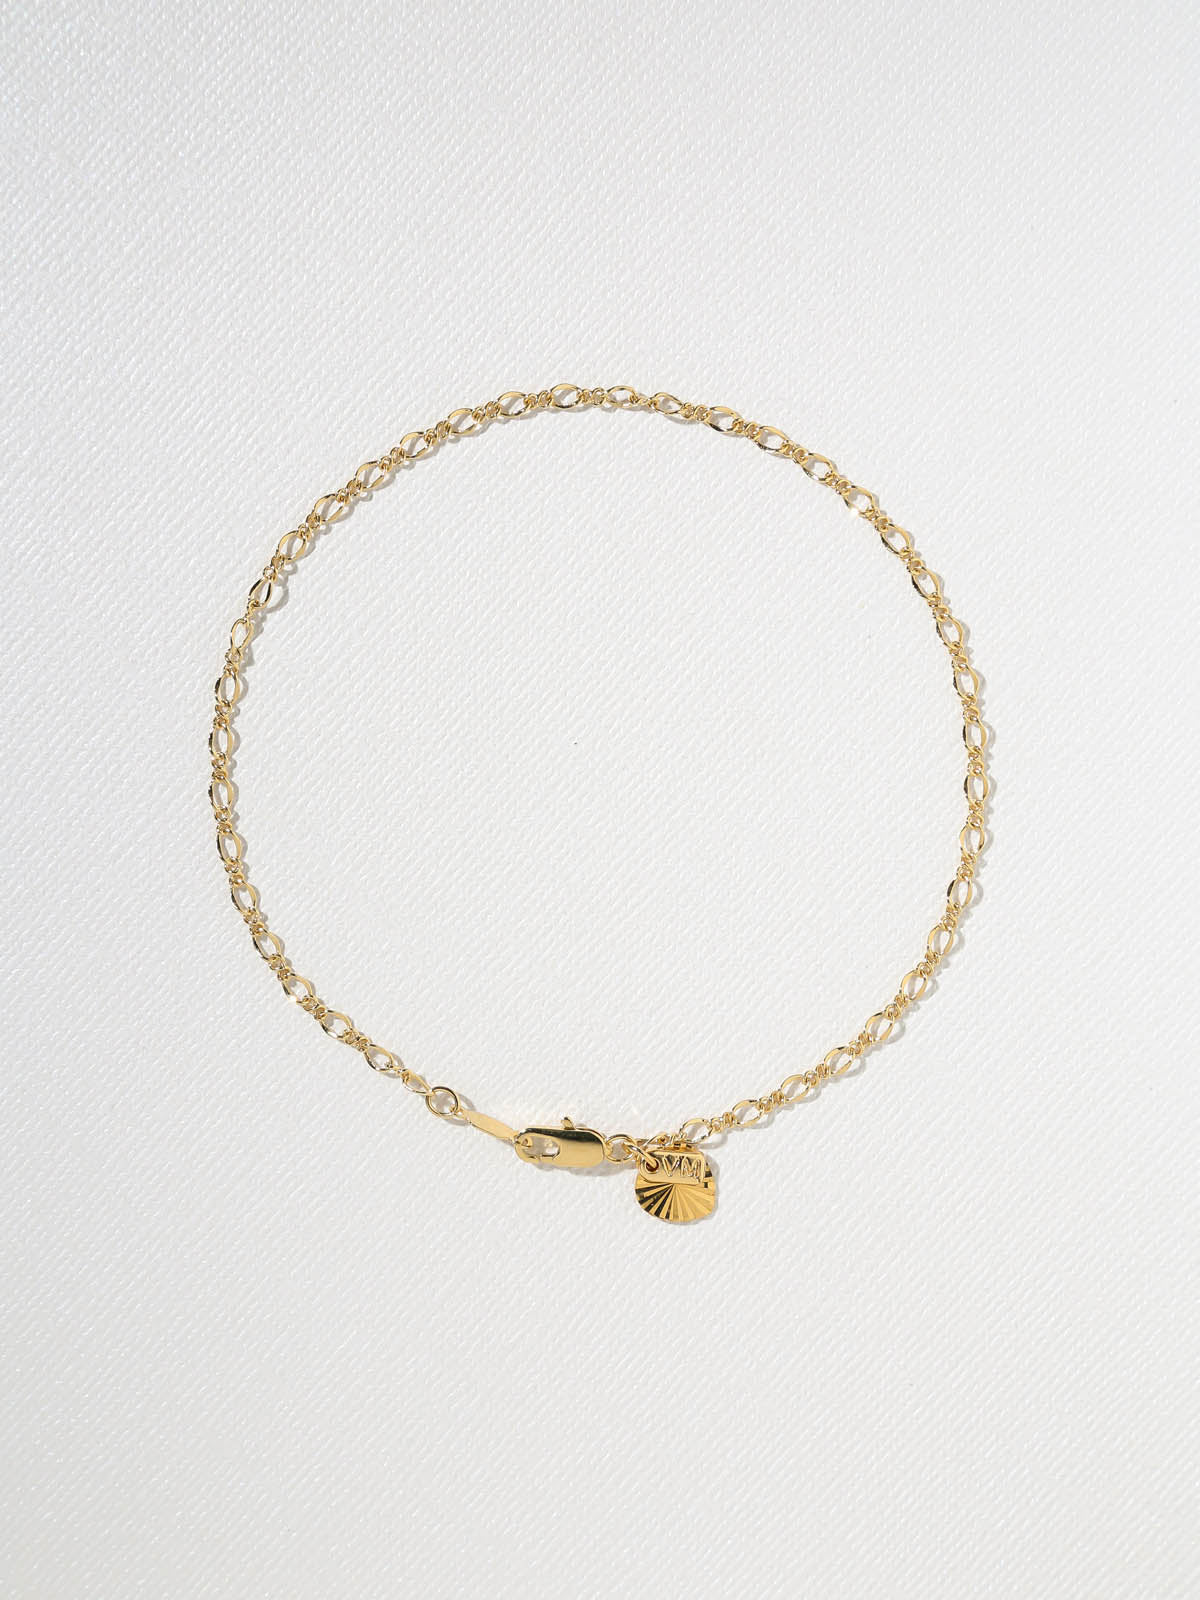 Accessories The Clover Anklet Vanessa Mooney